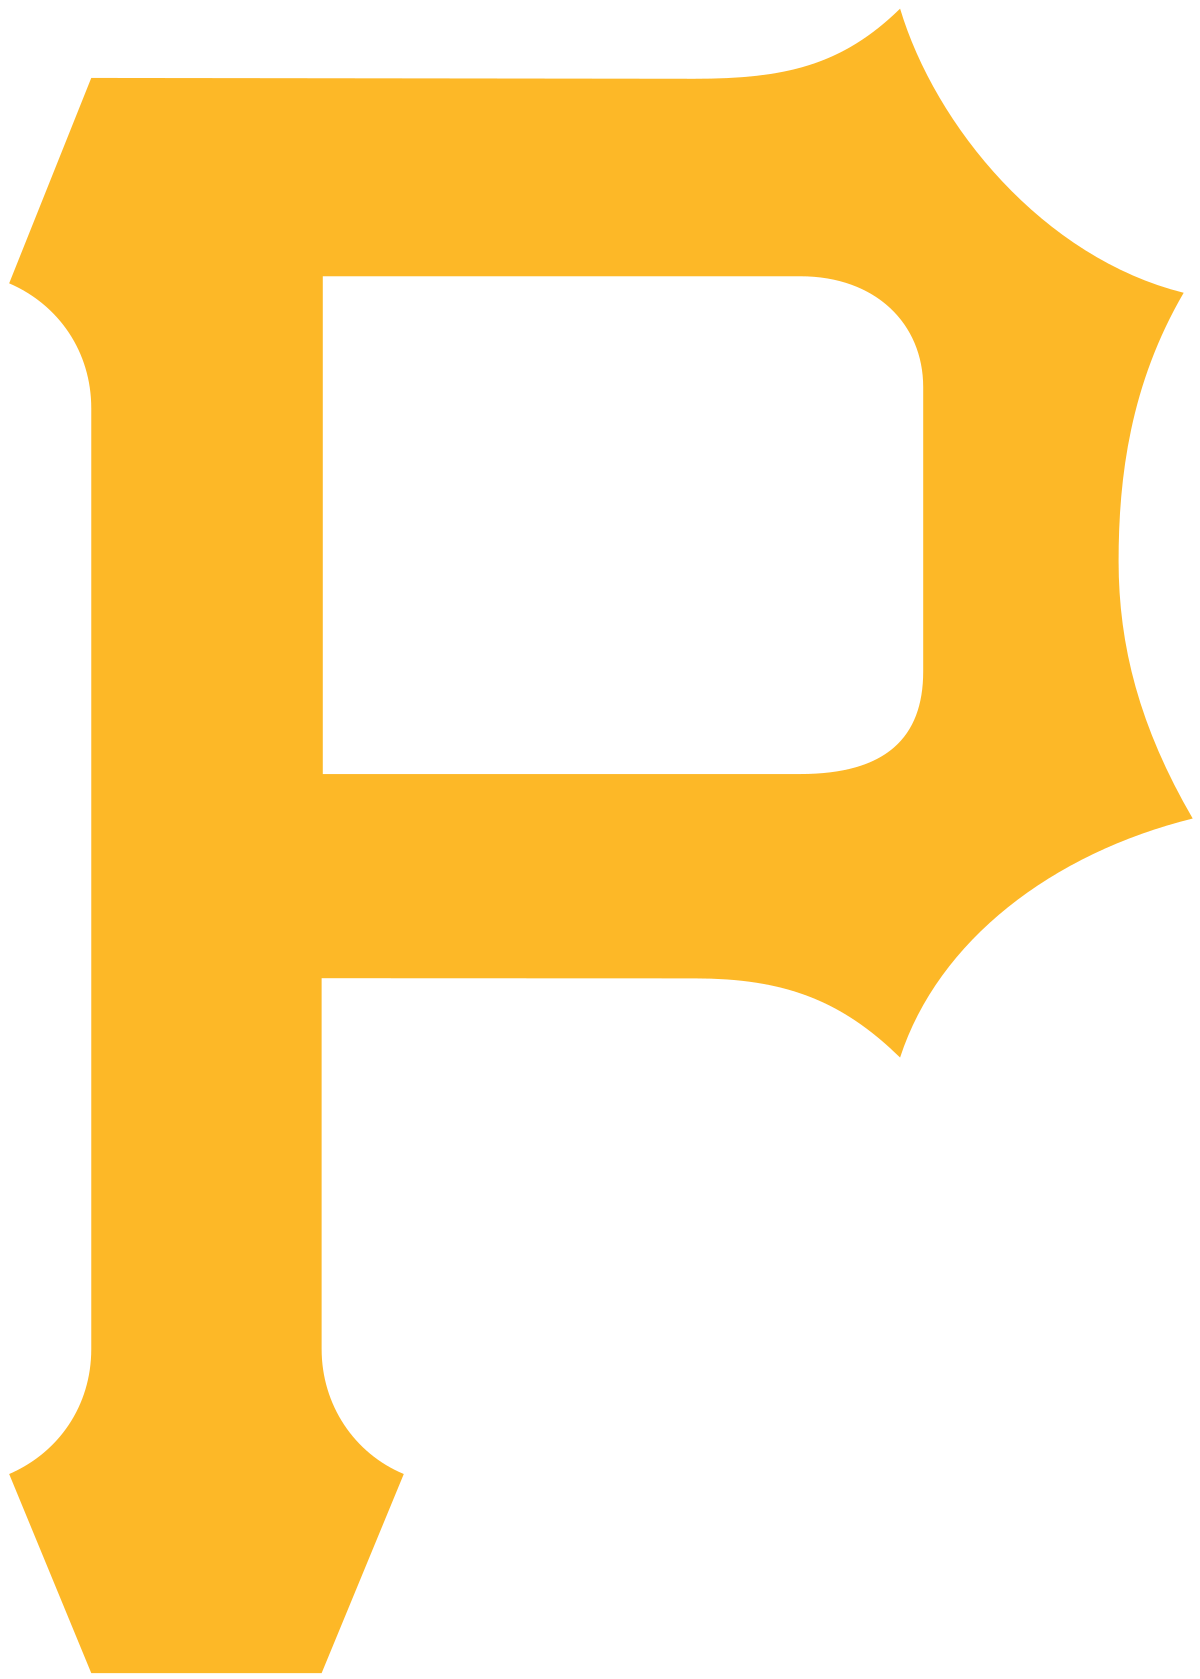 Steelers golden letters png. Pittsburgh pirates wikipedia